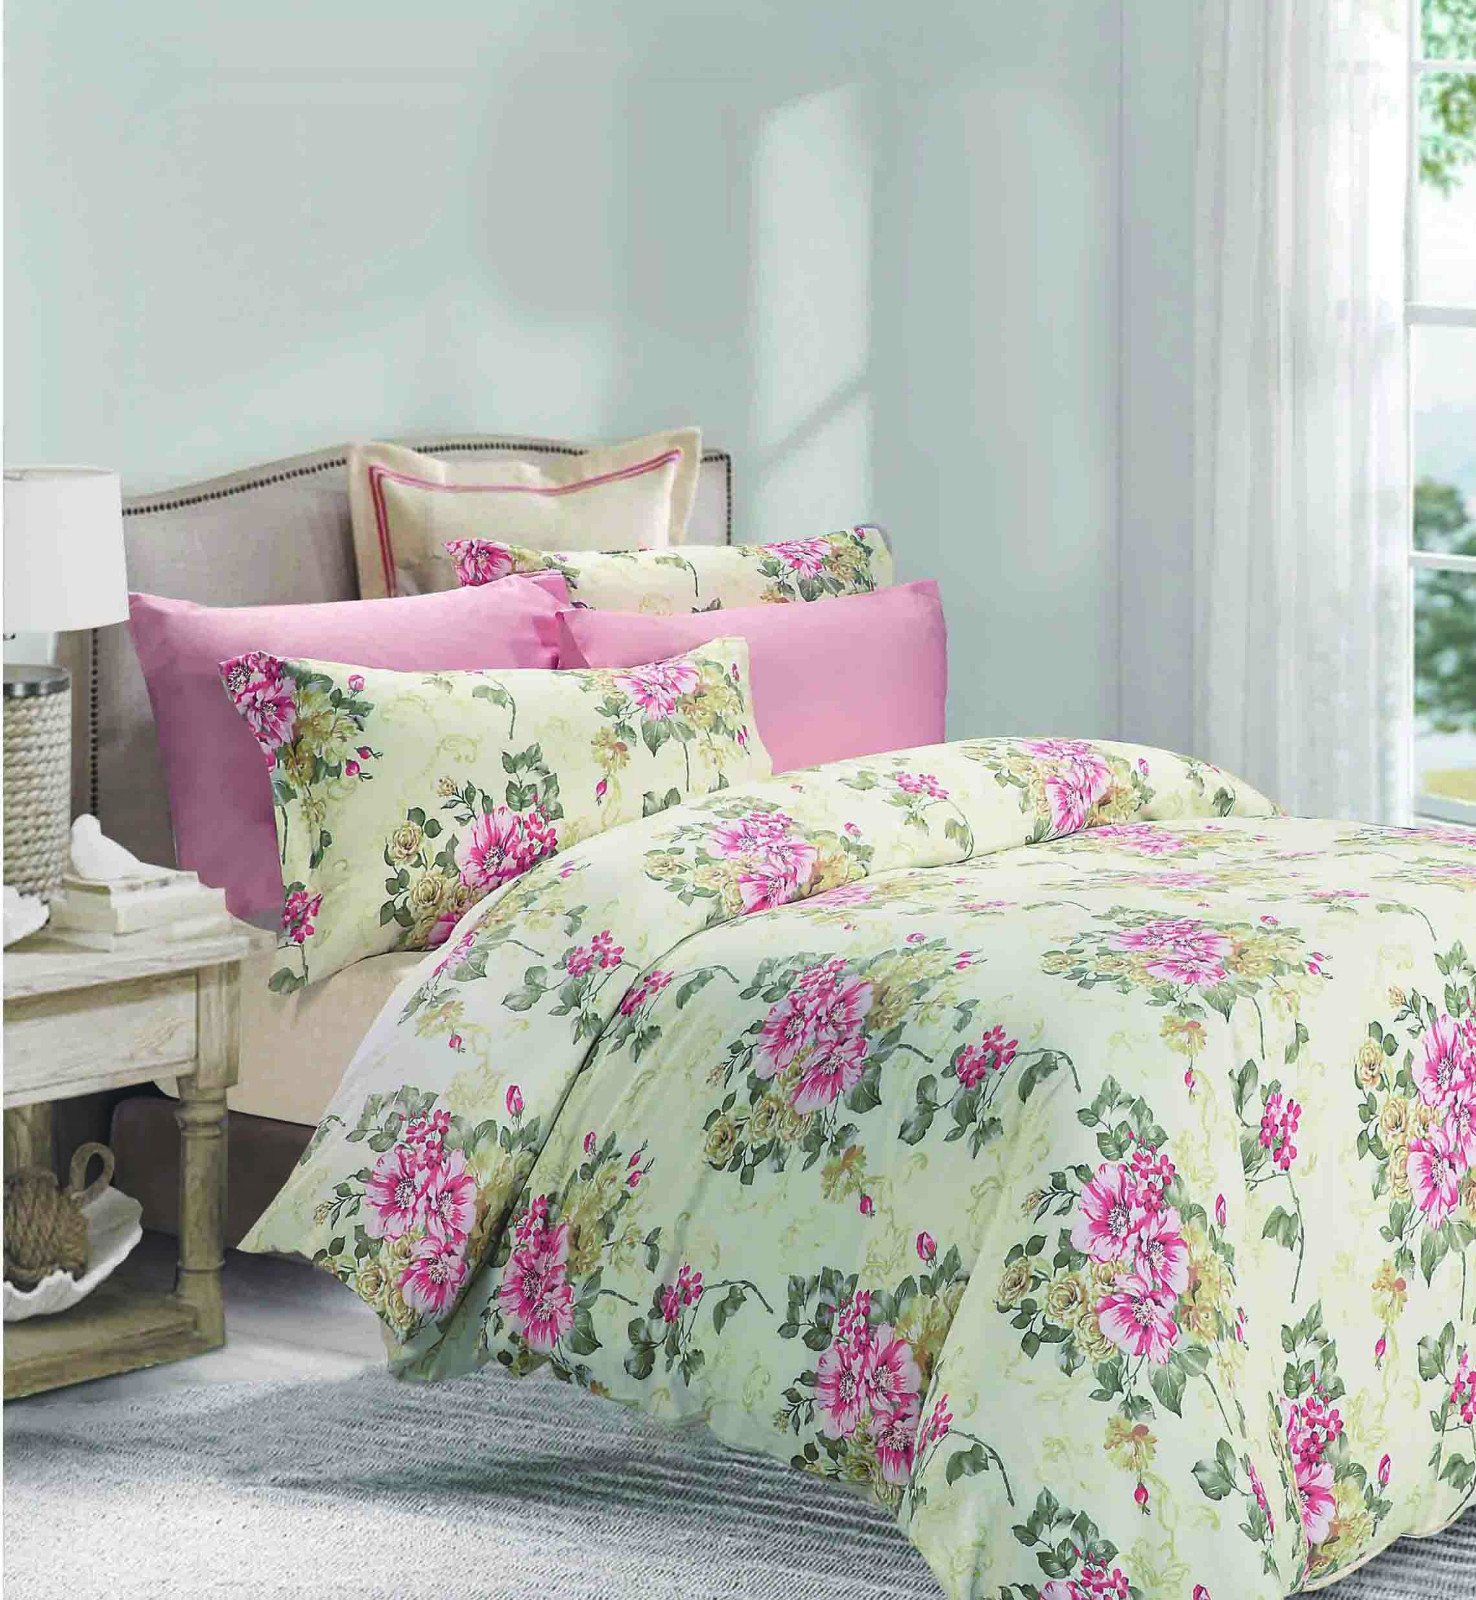 daphne magnolia printed joint Daphne 100 cotton bedding sets